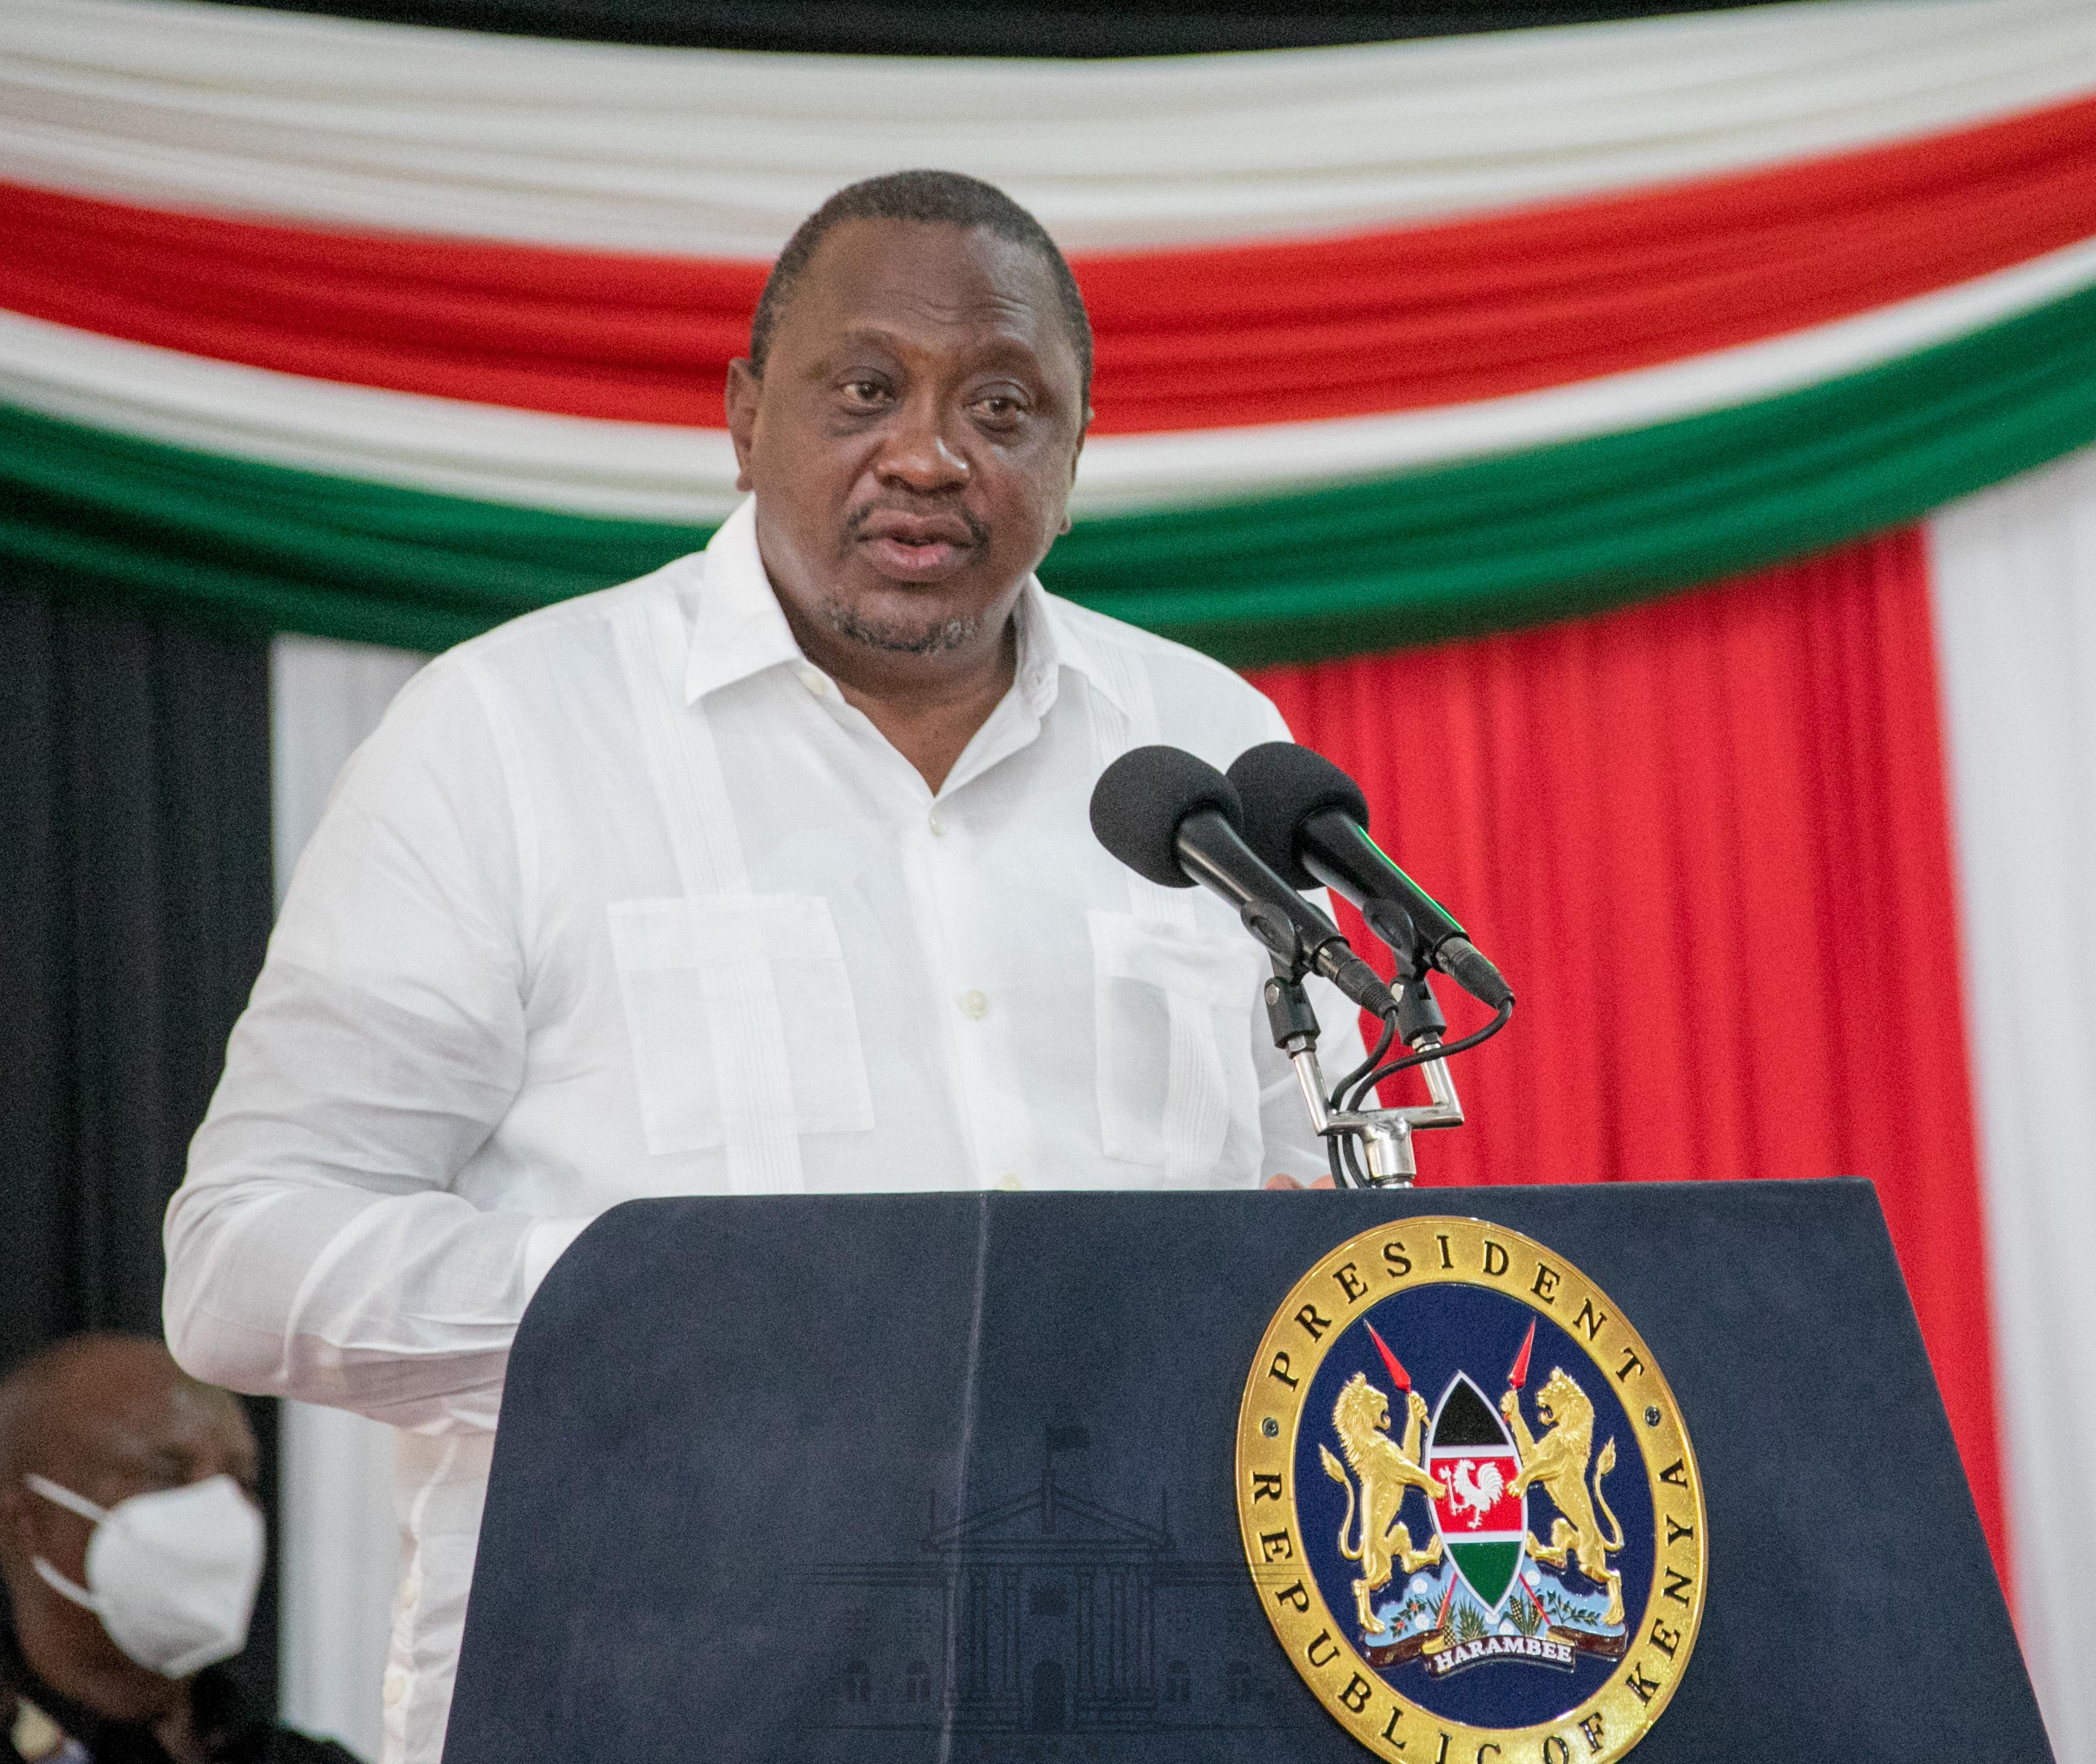 President Uhuru Kenyatta in April revealed the country is in the process of developing a Greenhouse Gas Emission Strategy (LTS) for 2050; and will submit the report to United Nations Framework for Convention on Climate Change before COP 26, in November 2021.